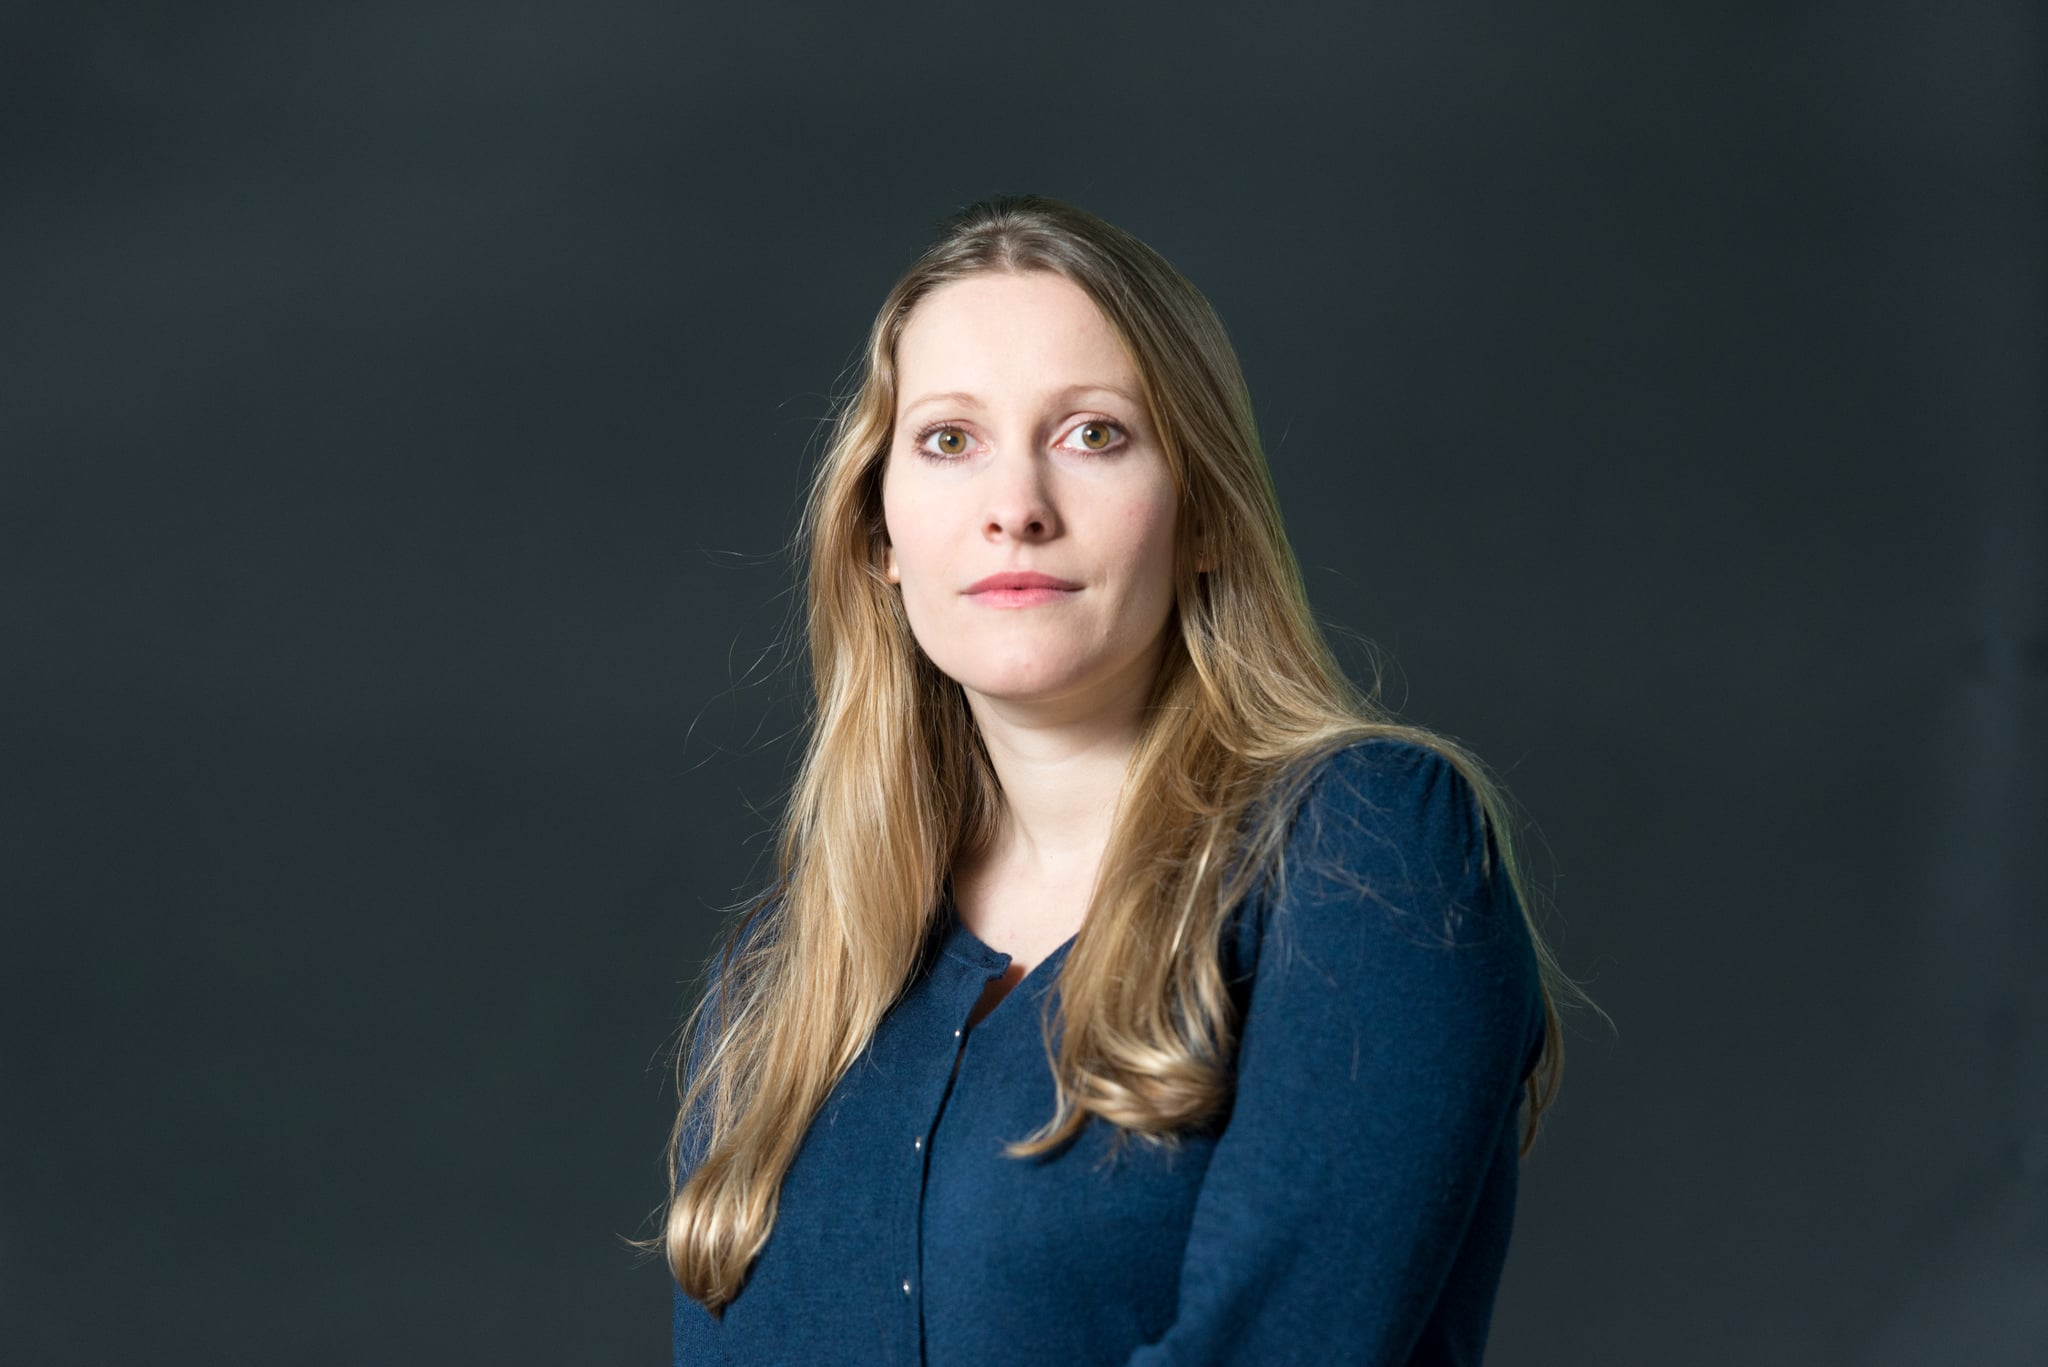 Laura Bates, founder of the Everyday Sexism project.